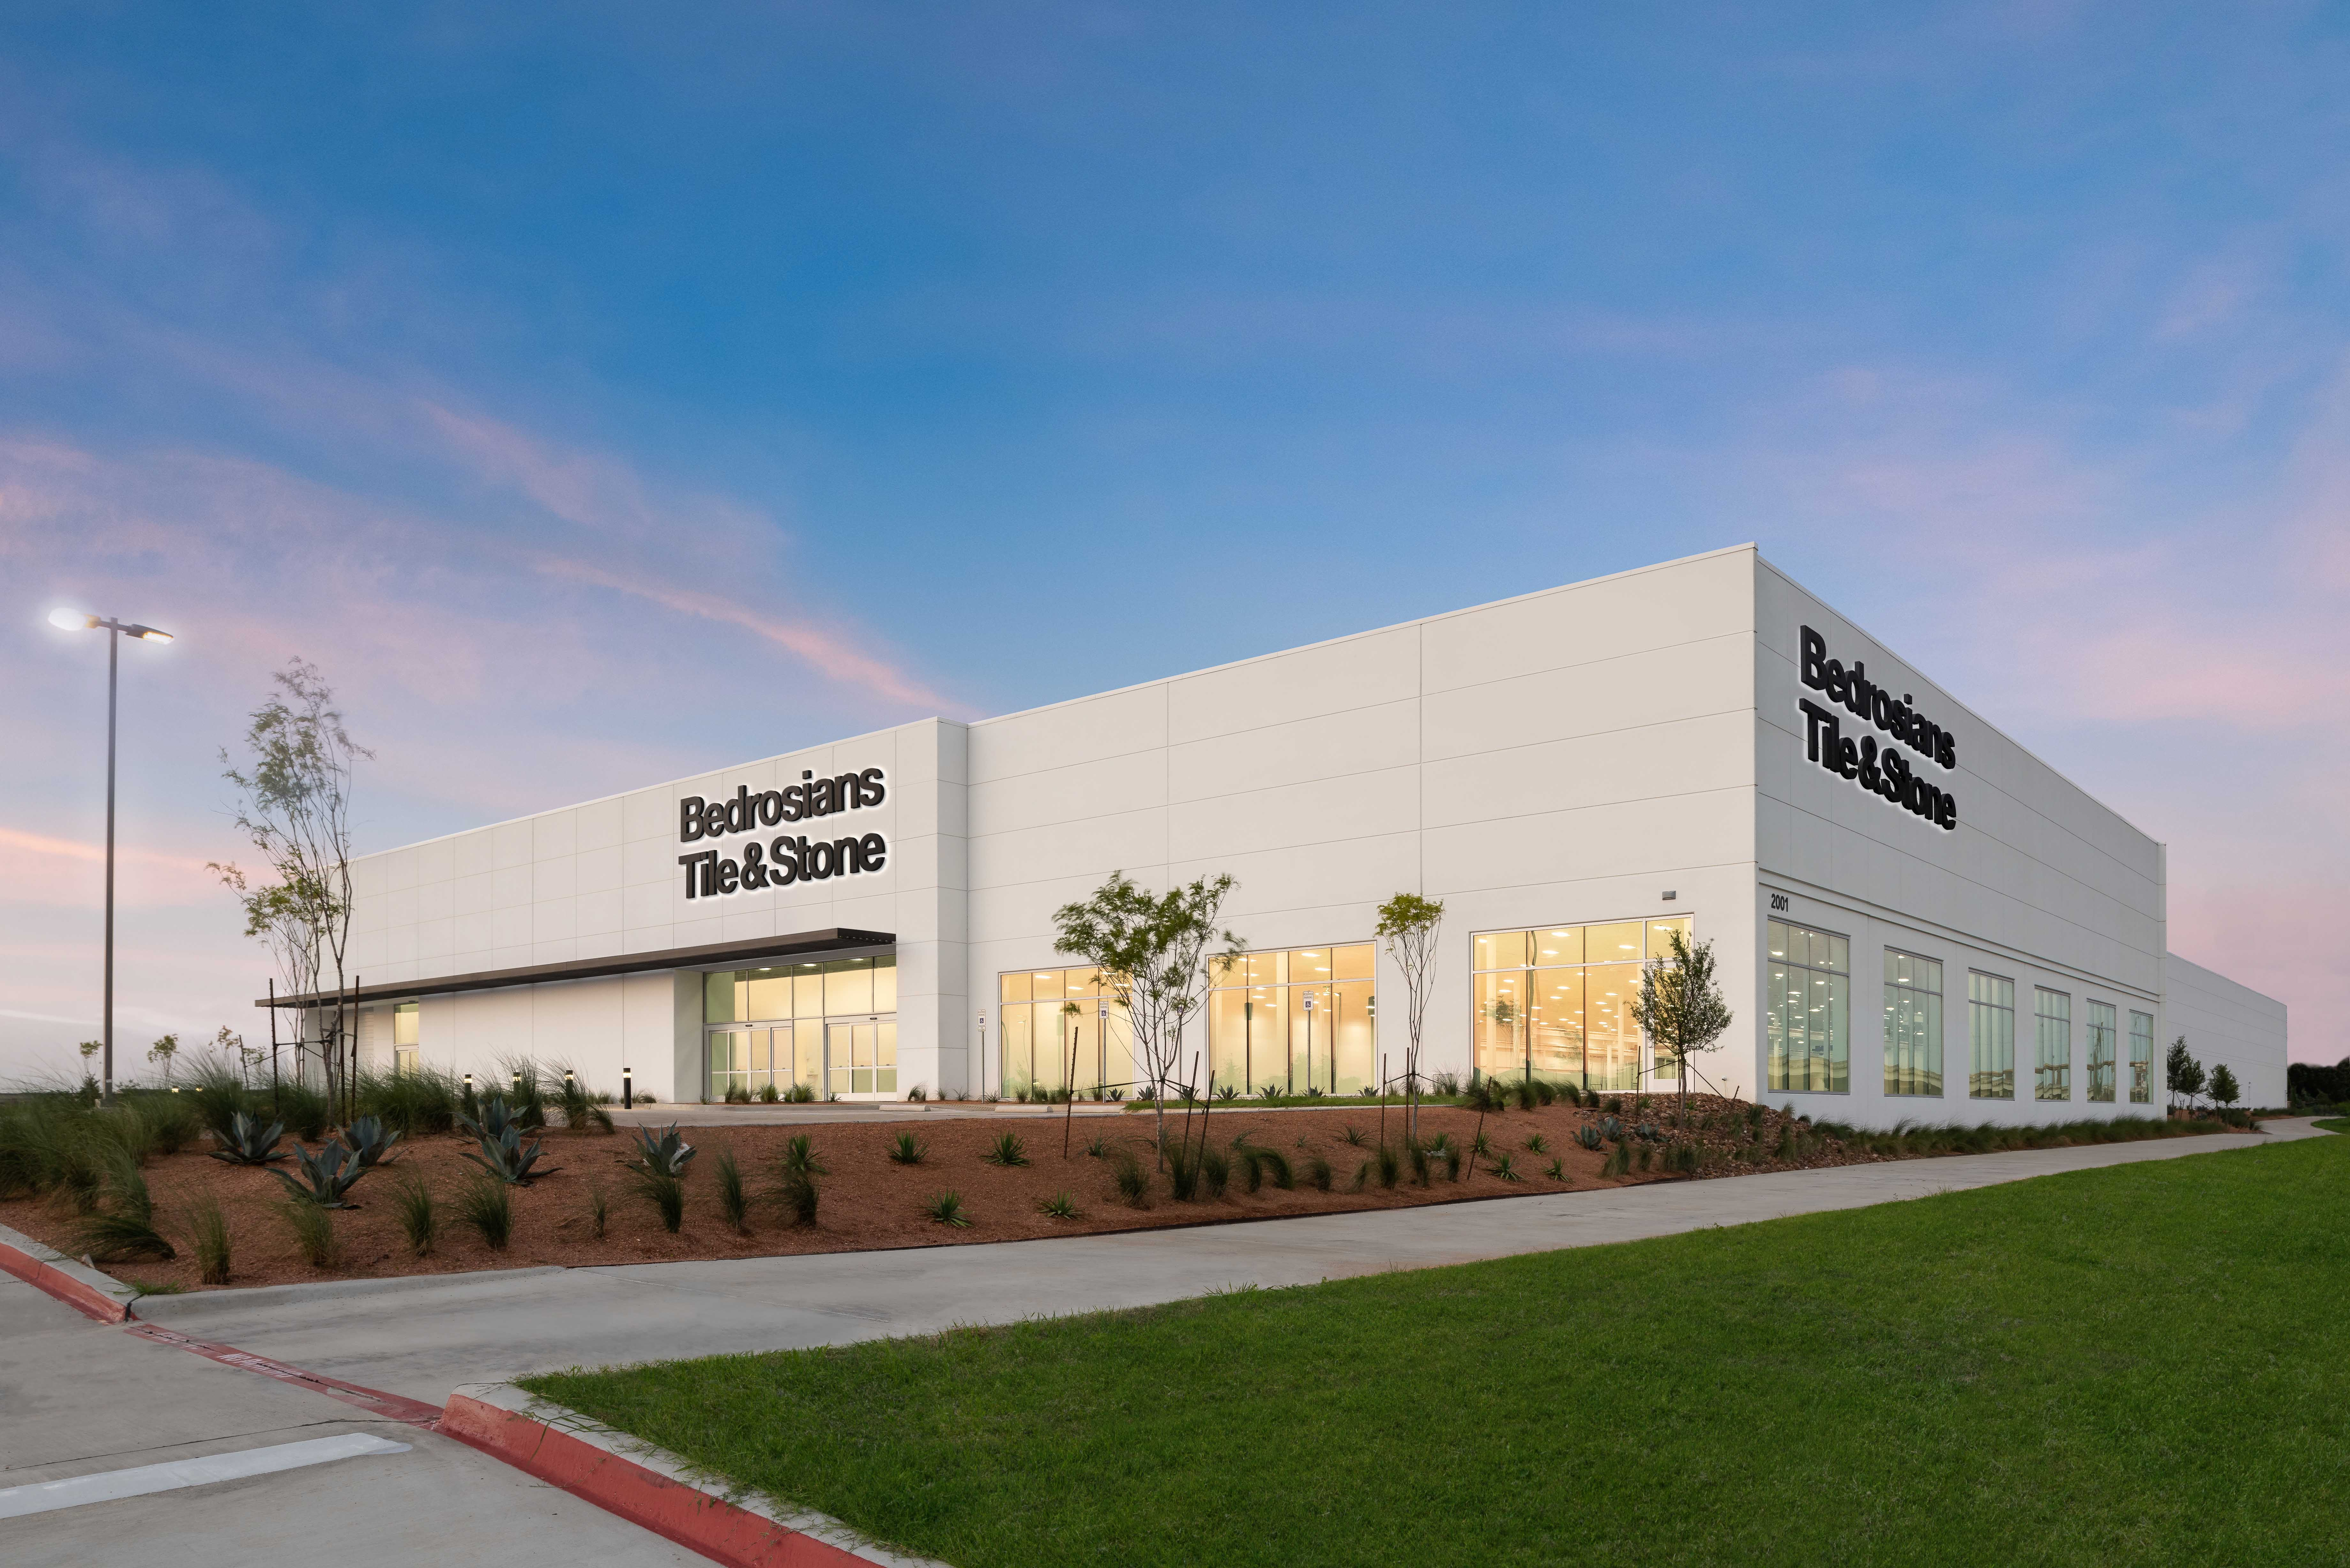 arco murray completes 114 000 sf warehouse and showroom in farmers branch tx arco murray